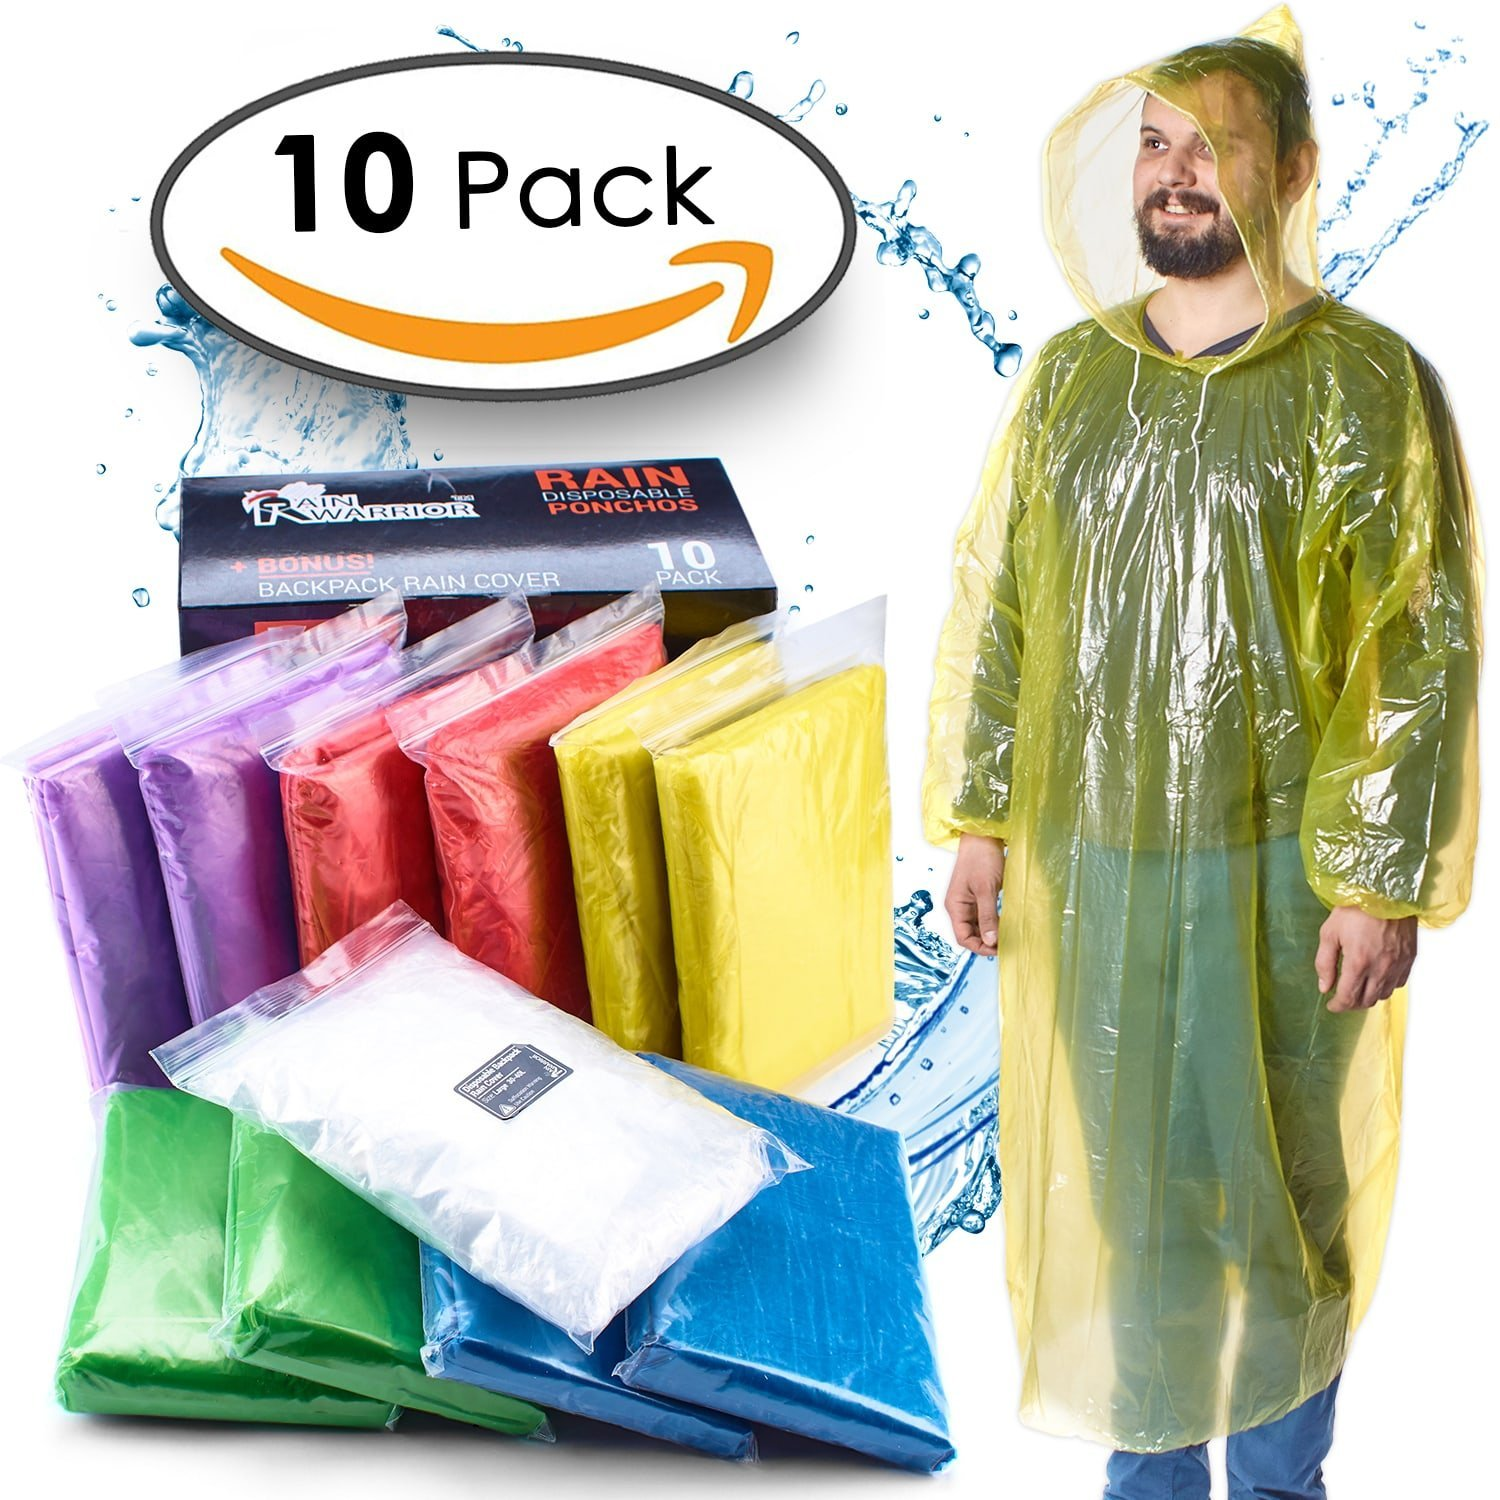 Emergency Waterproof Disposable Rain Ponchos – Assorted Colors 10 Pack - Lightweight Universal Design For Adults, Men & Women - Poncho Includes Hoods With Drawstrings - Bonus Backpack Rain Cover